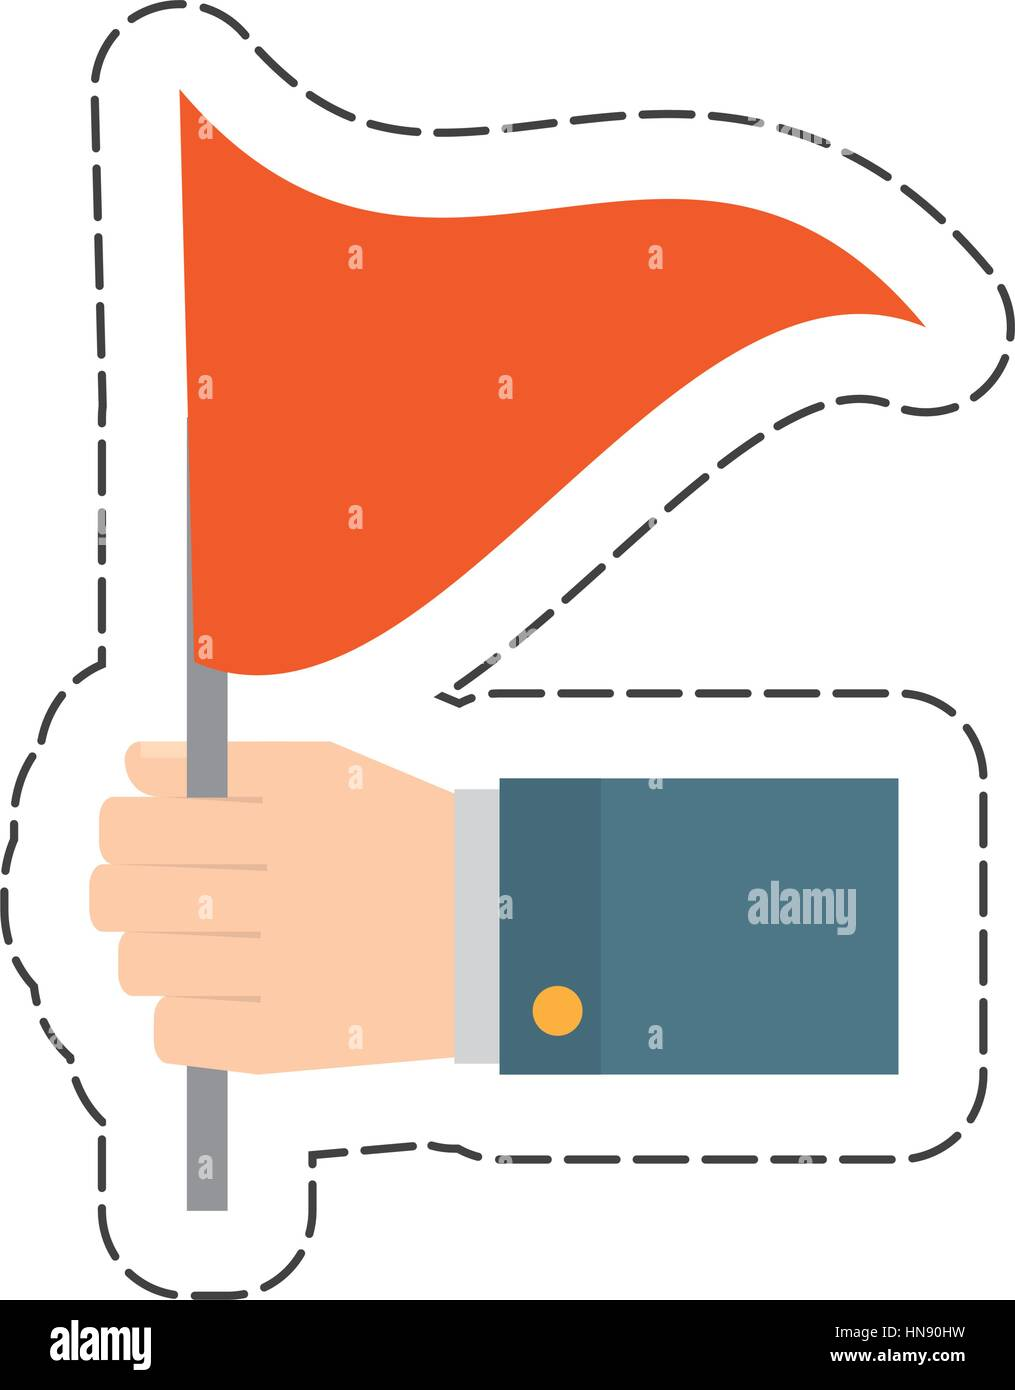 red flag in the hand icon, vector illustration image - Stock Image